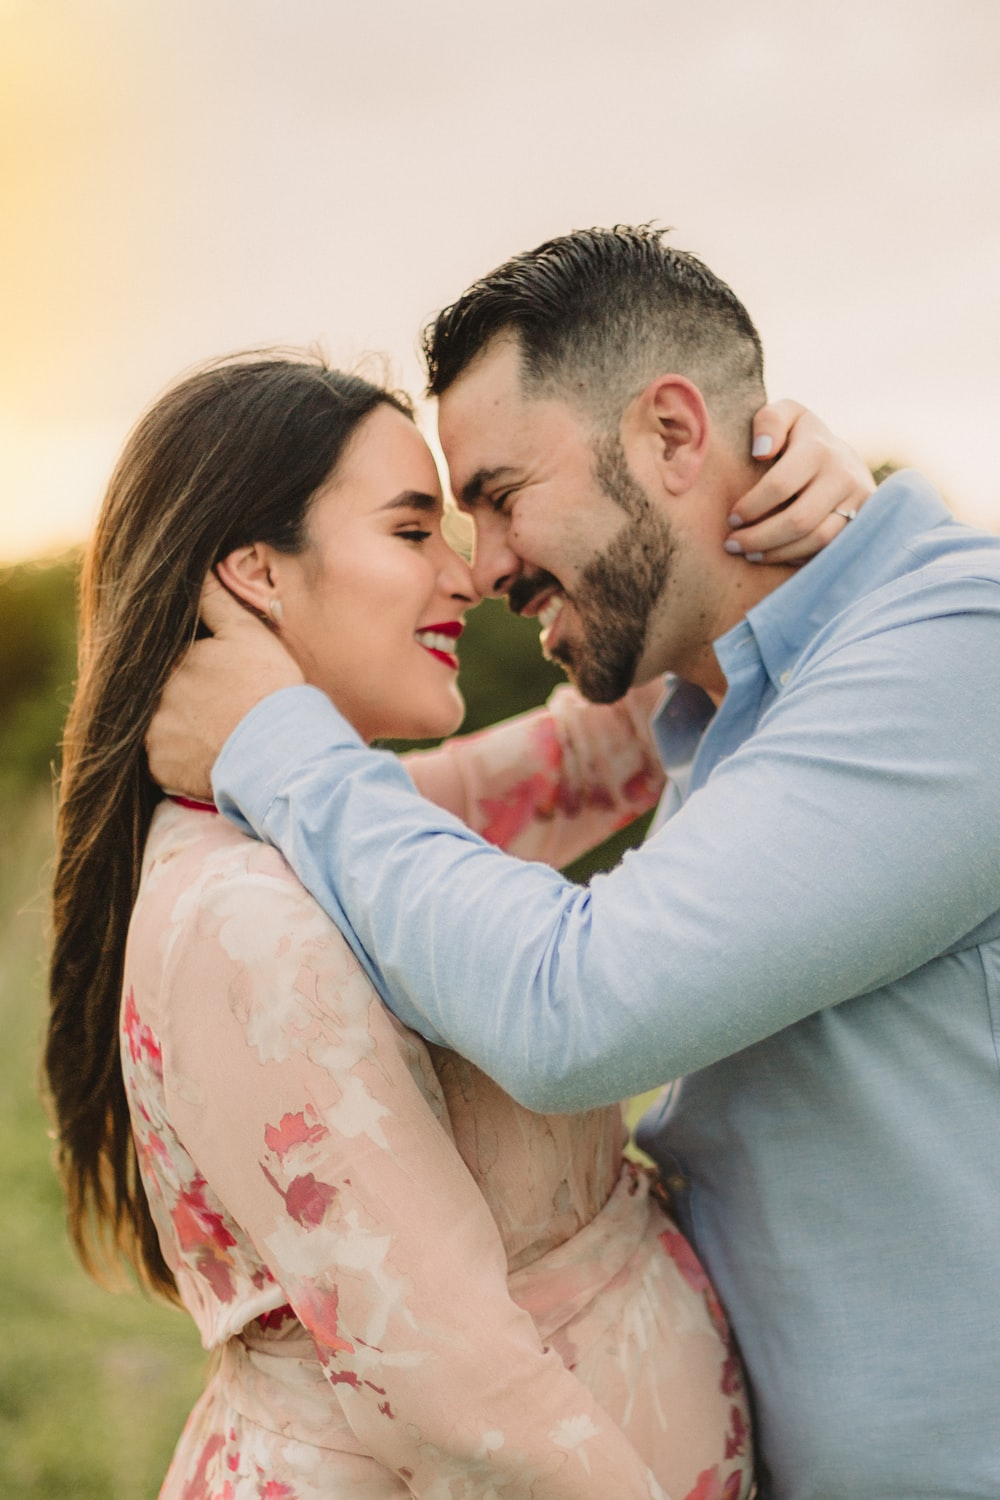 man in blue dress shirt kissing woman in white floral dress